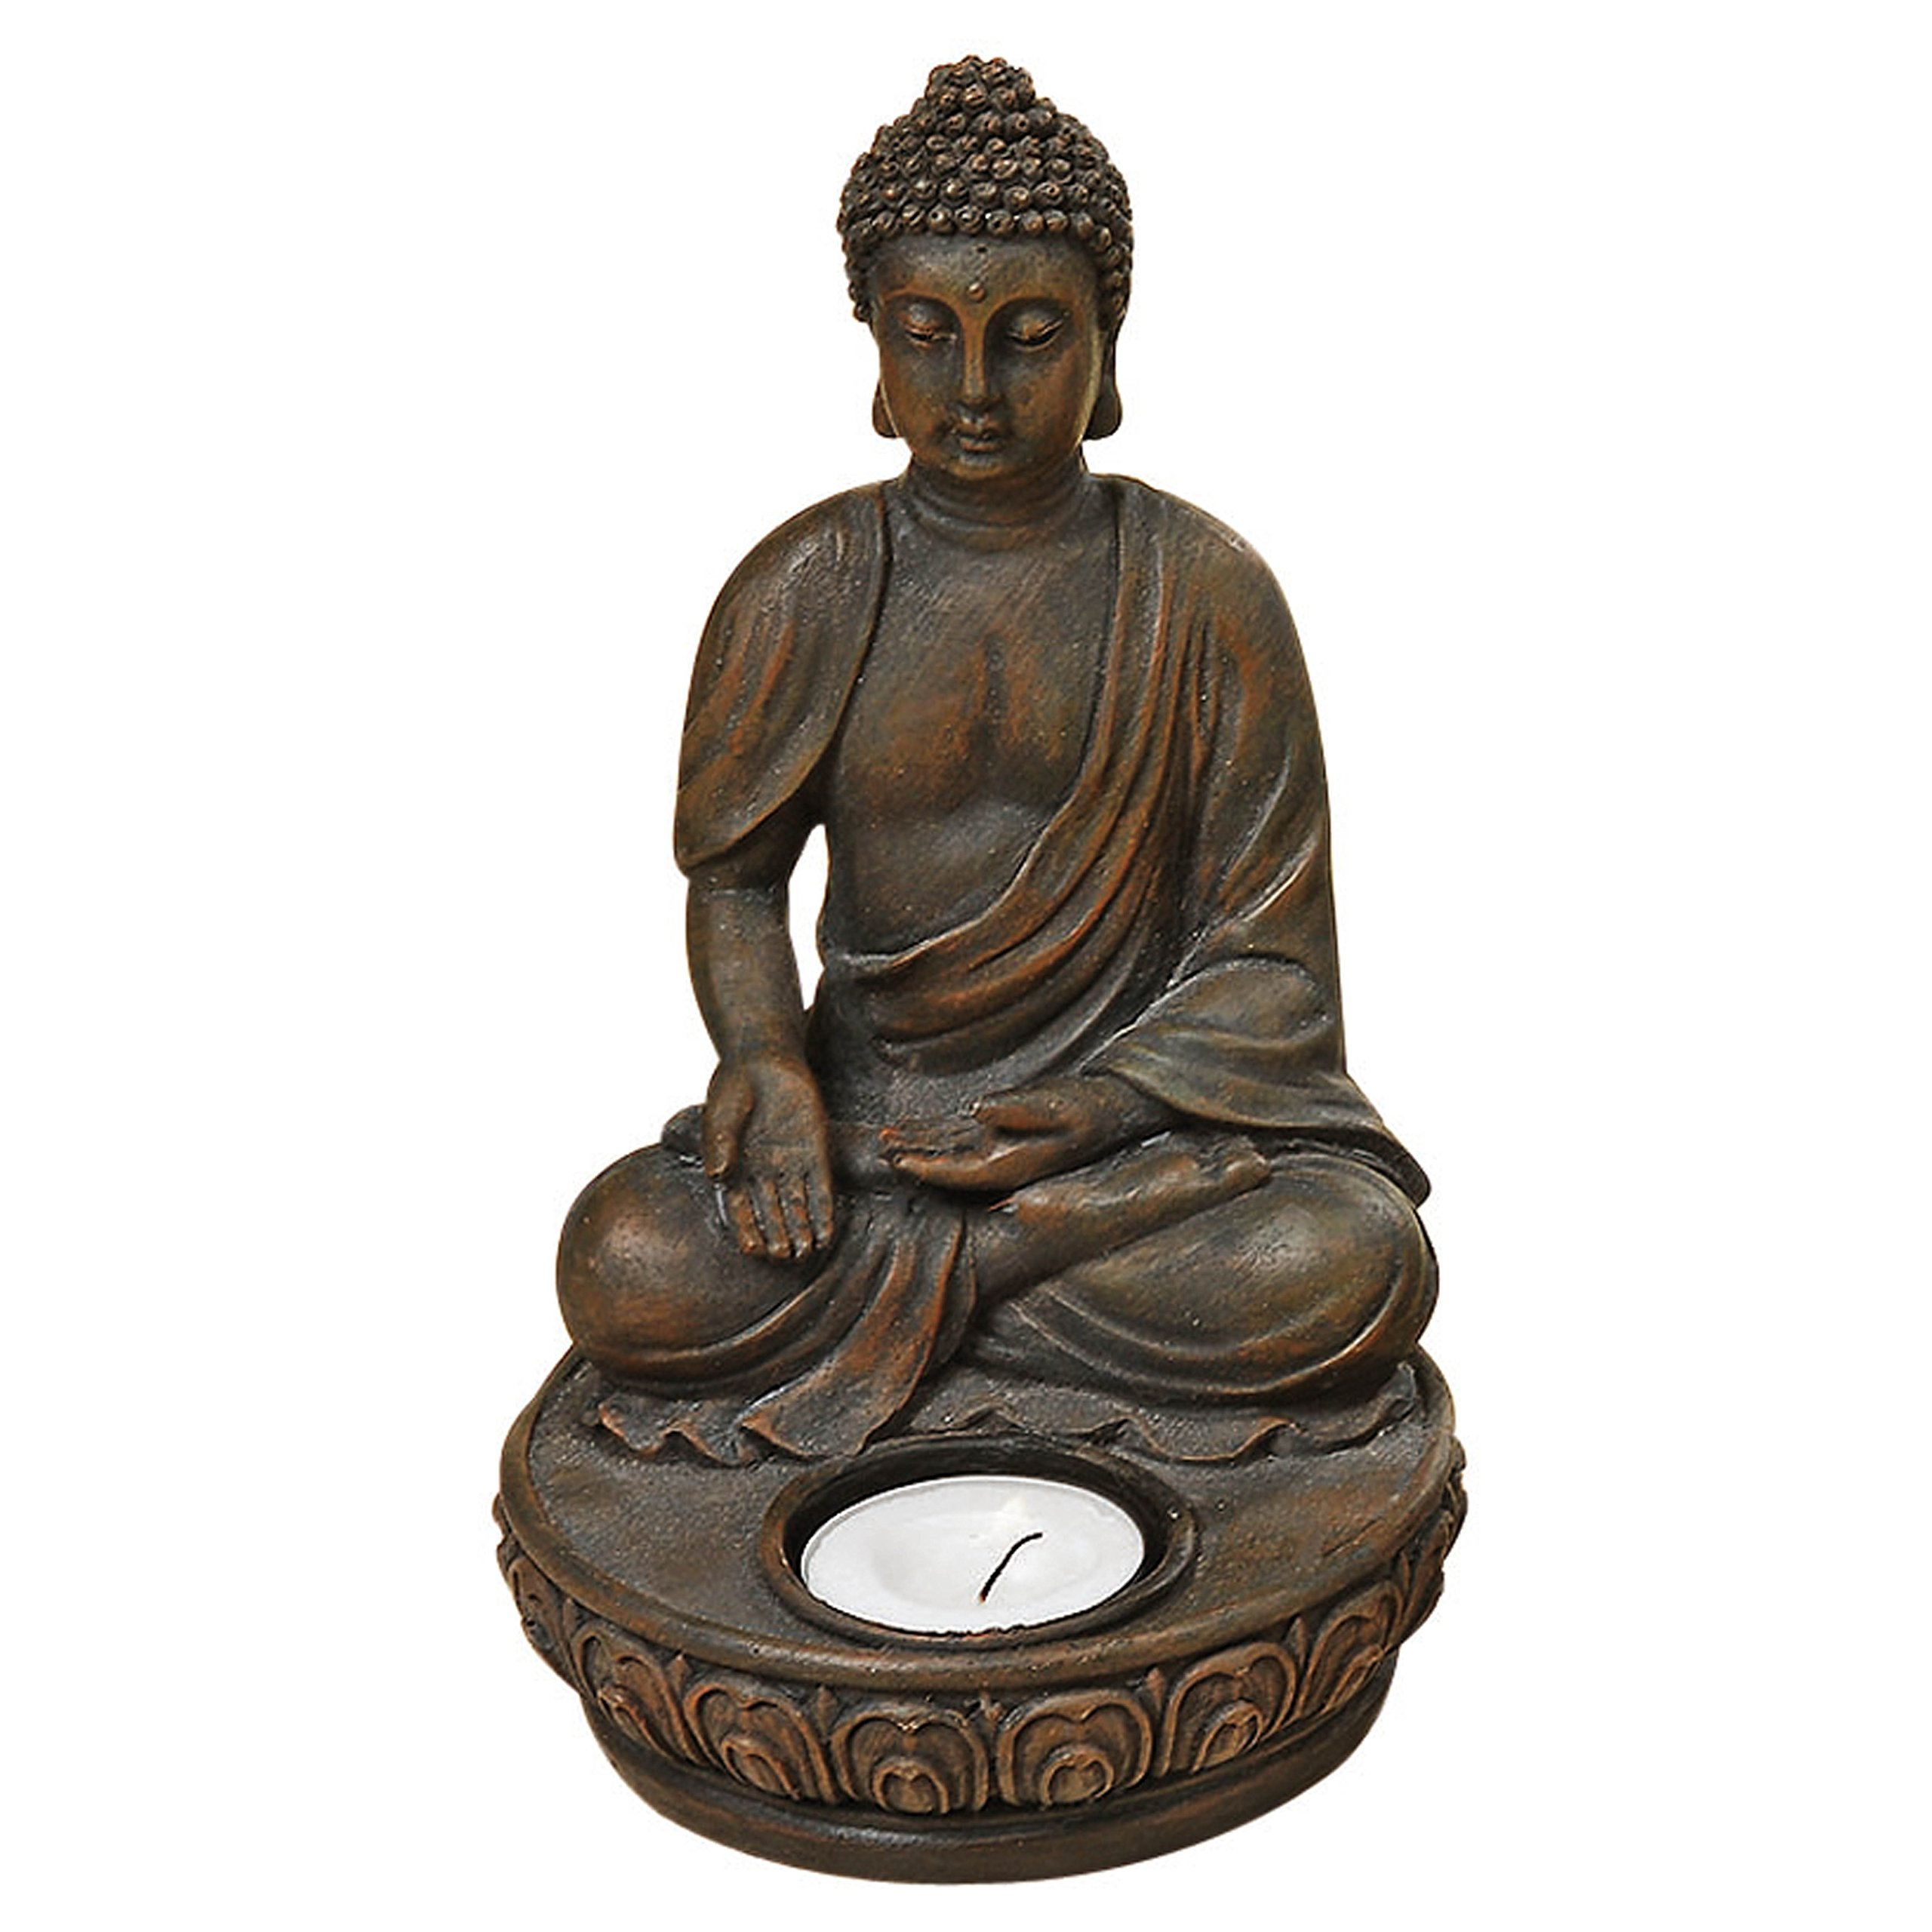 "Whole House Worlds The Seated Buddha Tealight Candle Holder, Welcome and Compassion Varada Mudra Pose, 7 ½ H x 4 3/8"", Hand Crafted Cast Polyresin, Bronze, From the Serenity Collection By"